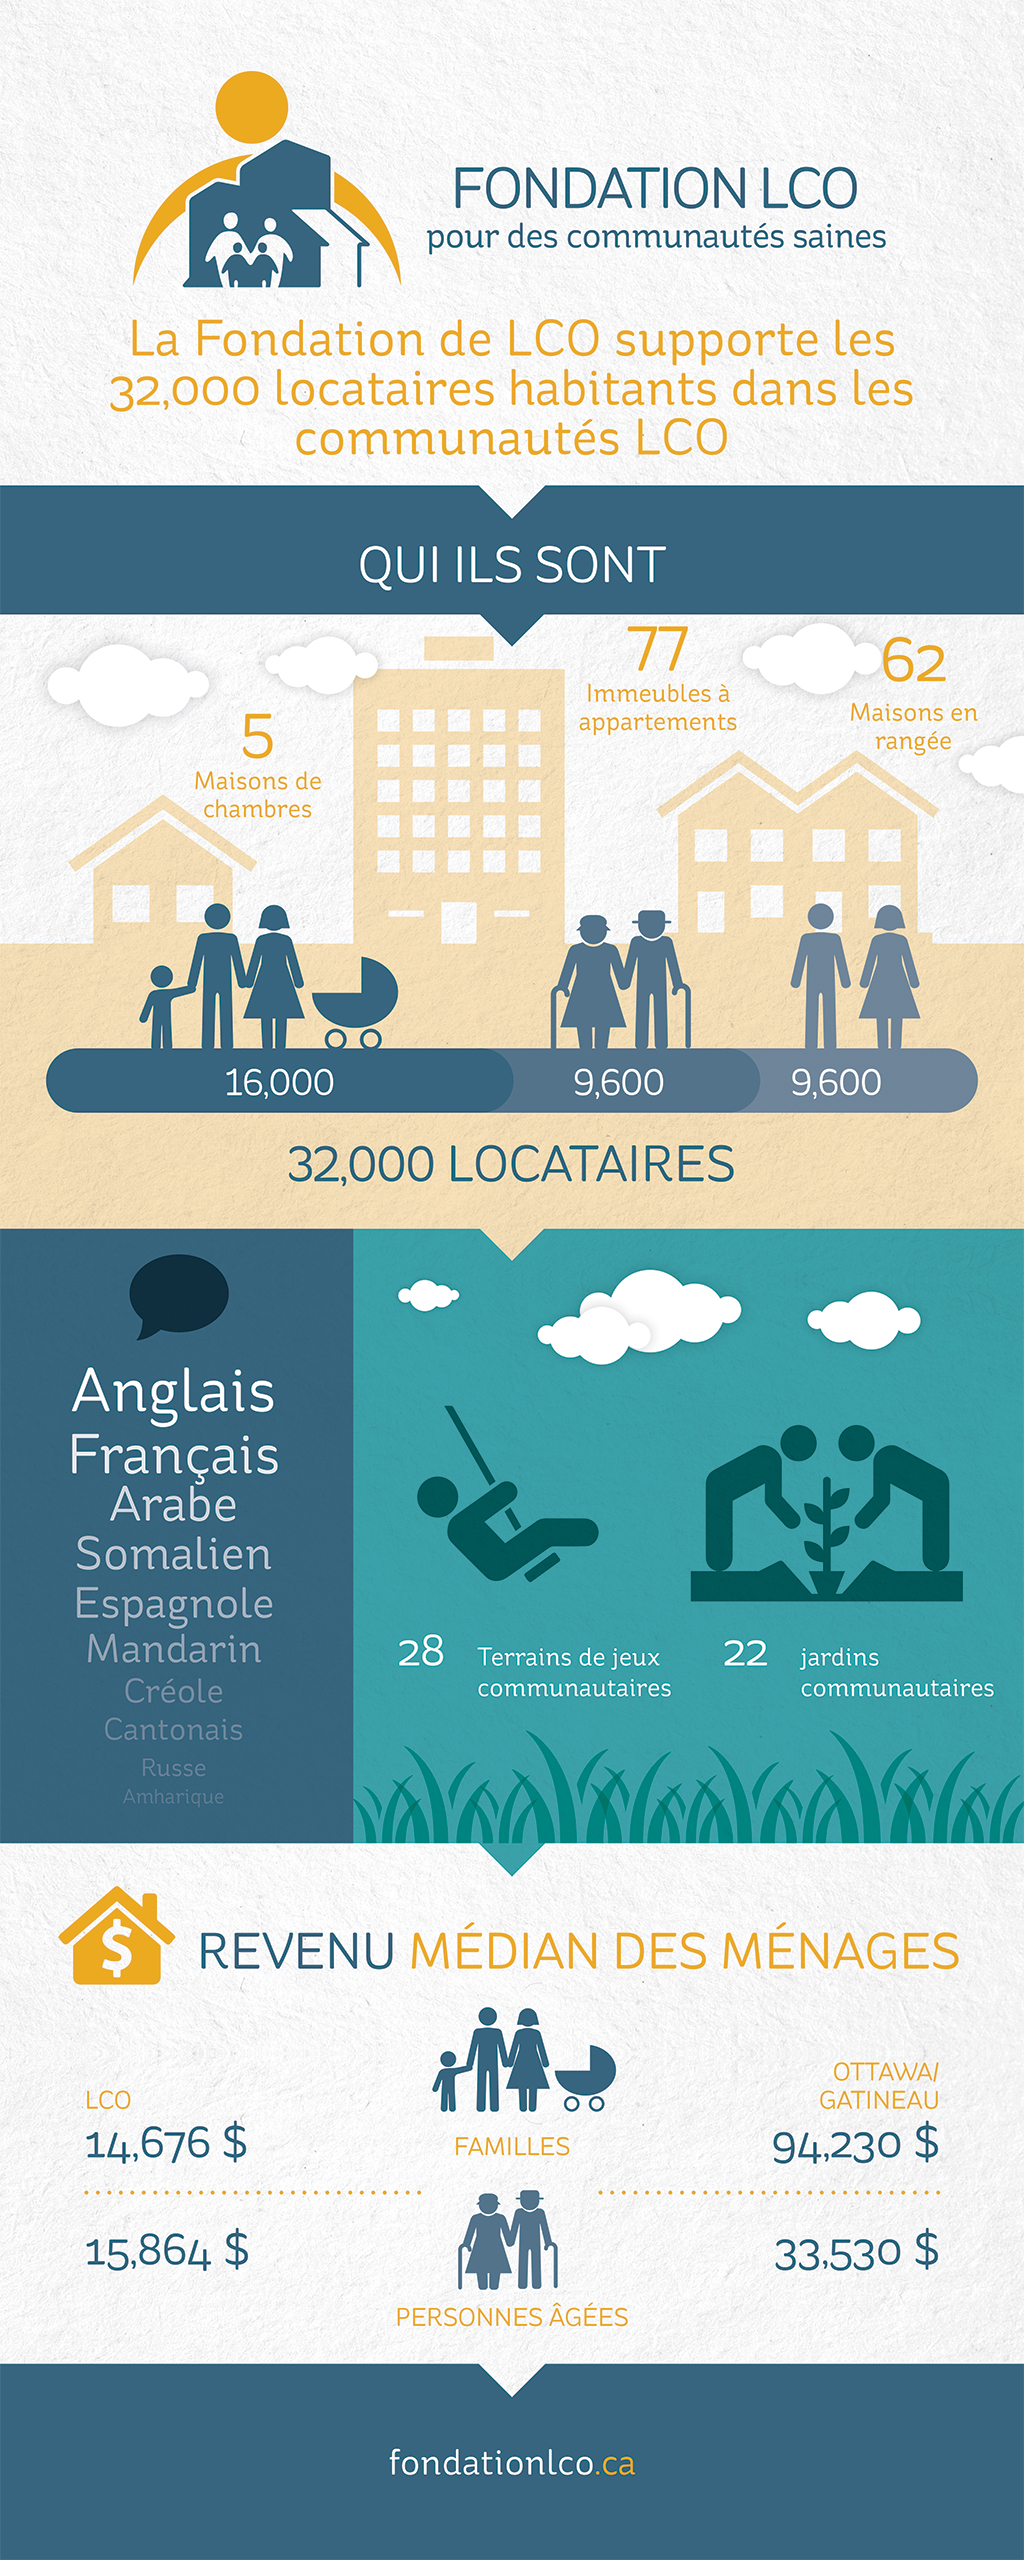 OCHF-Infographic_French